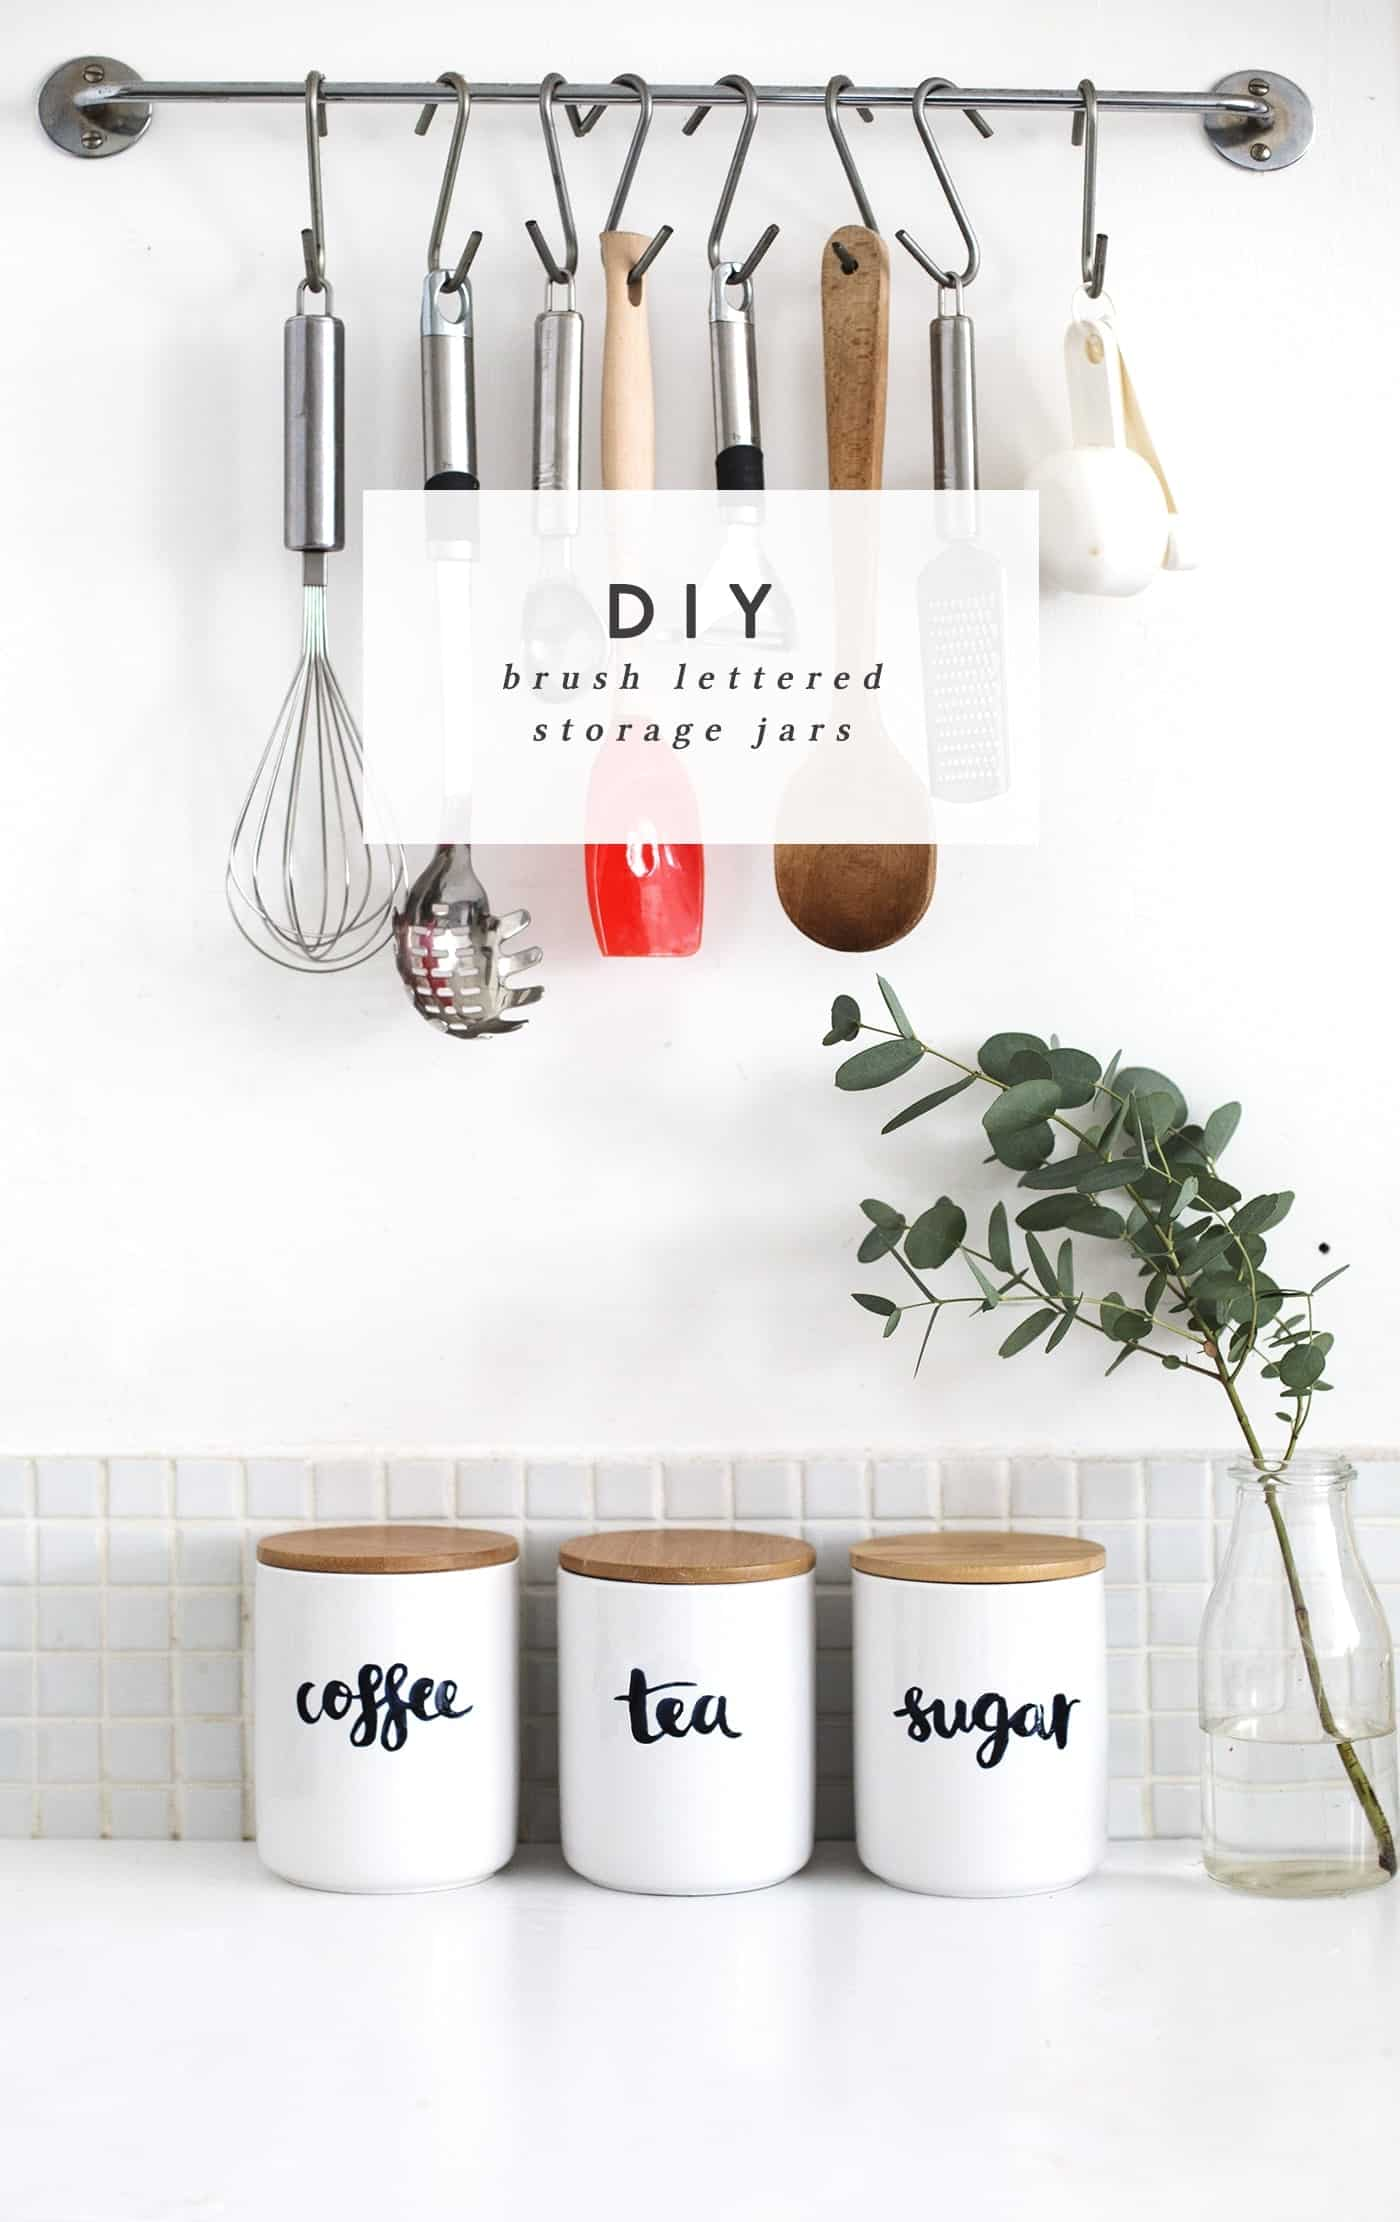 Diy personalized kitchen storage